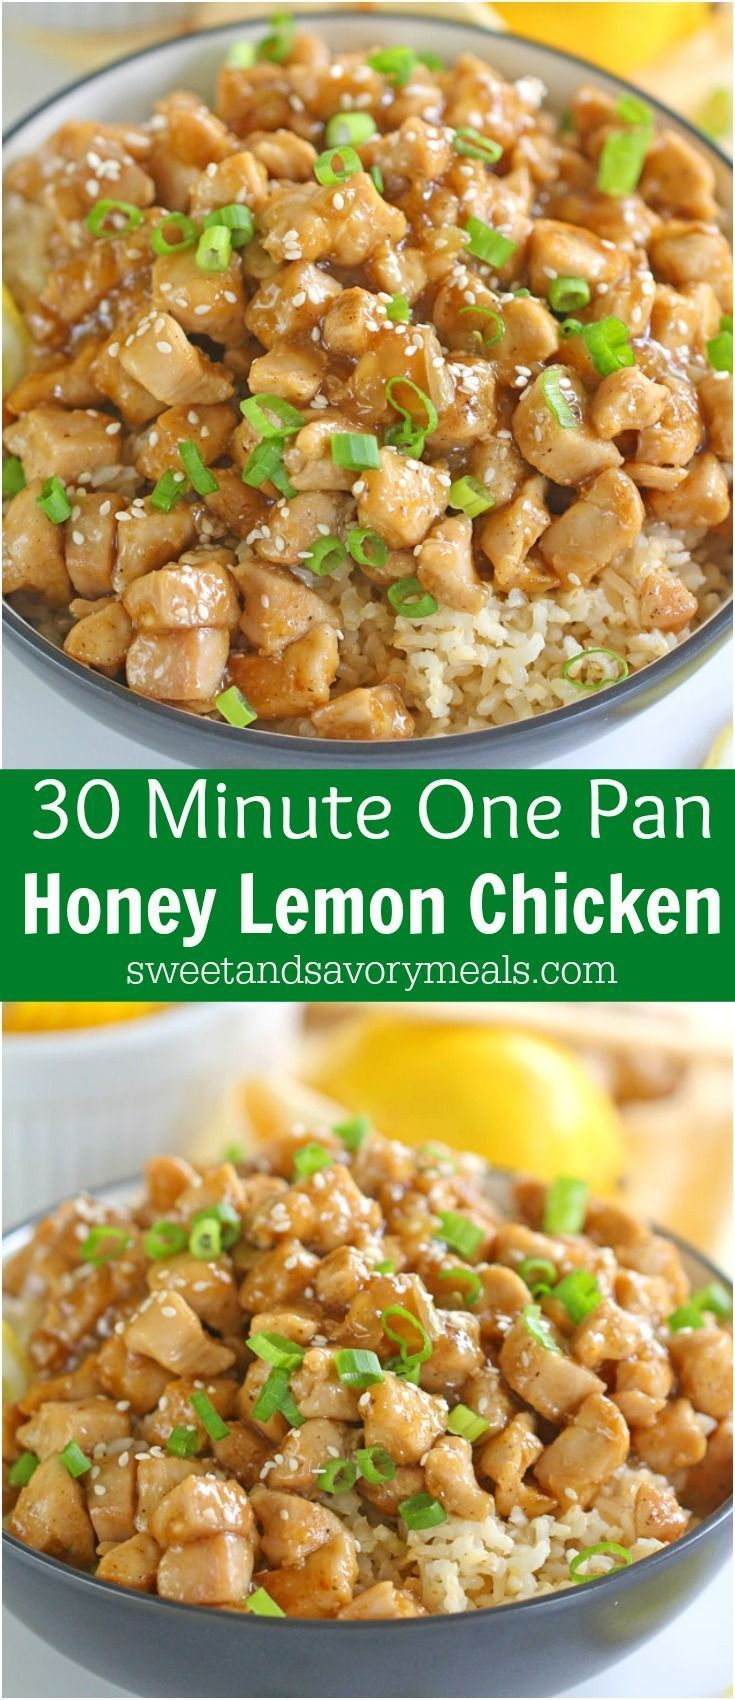 Healthy Honey Lemon Chicken is one of the fastest, most delicious and flavorful dinners you can make in 30 minutes! Not fried and with no processed sugar! #chicken #chickenrecipe #asianrecipe #30minutedinner #healthyrecipes